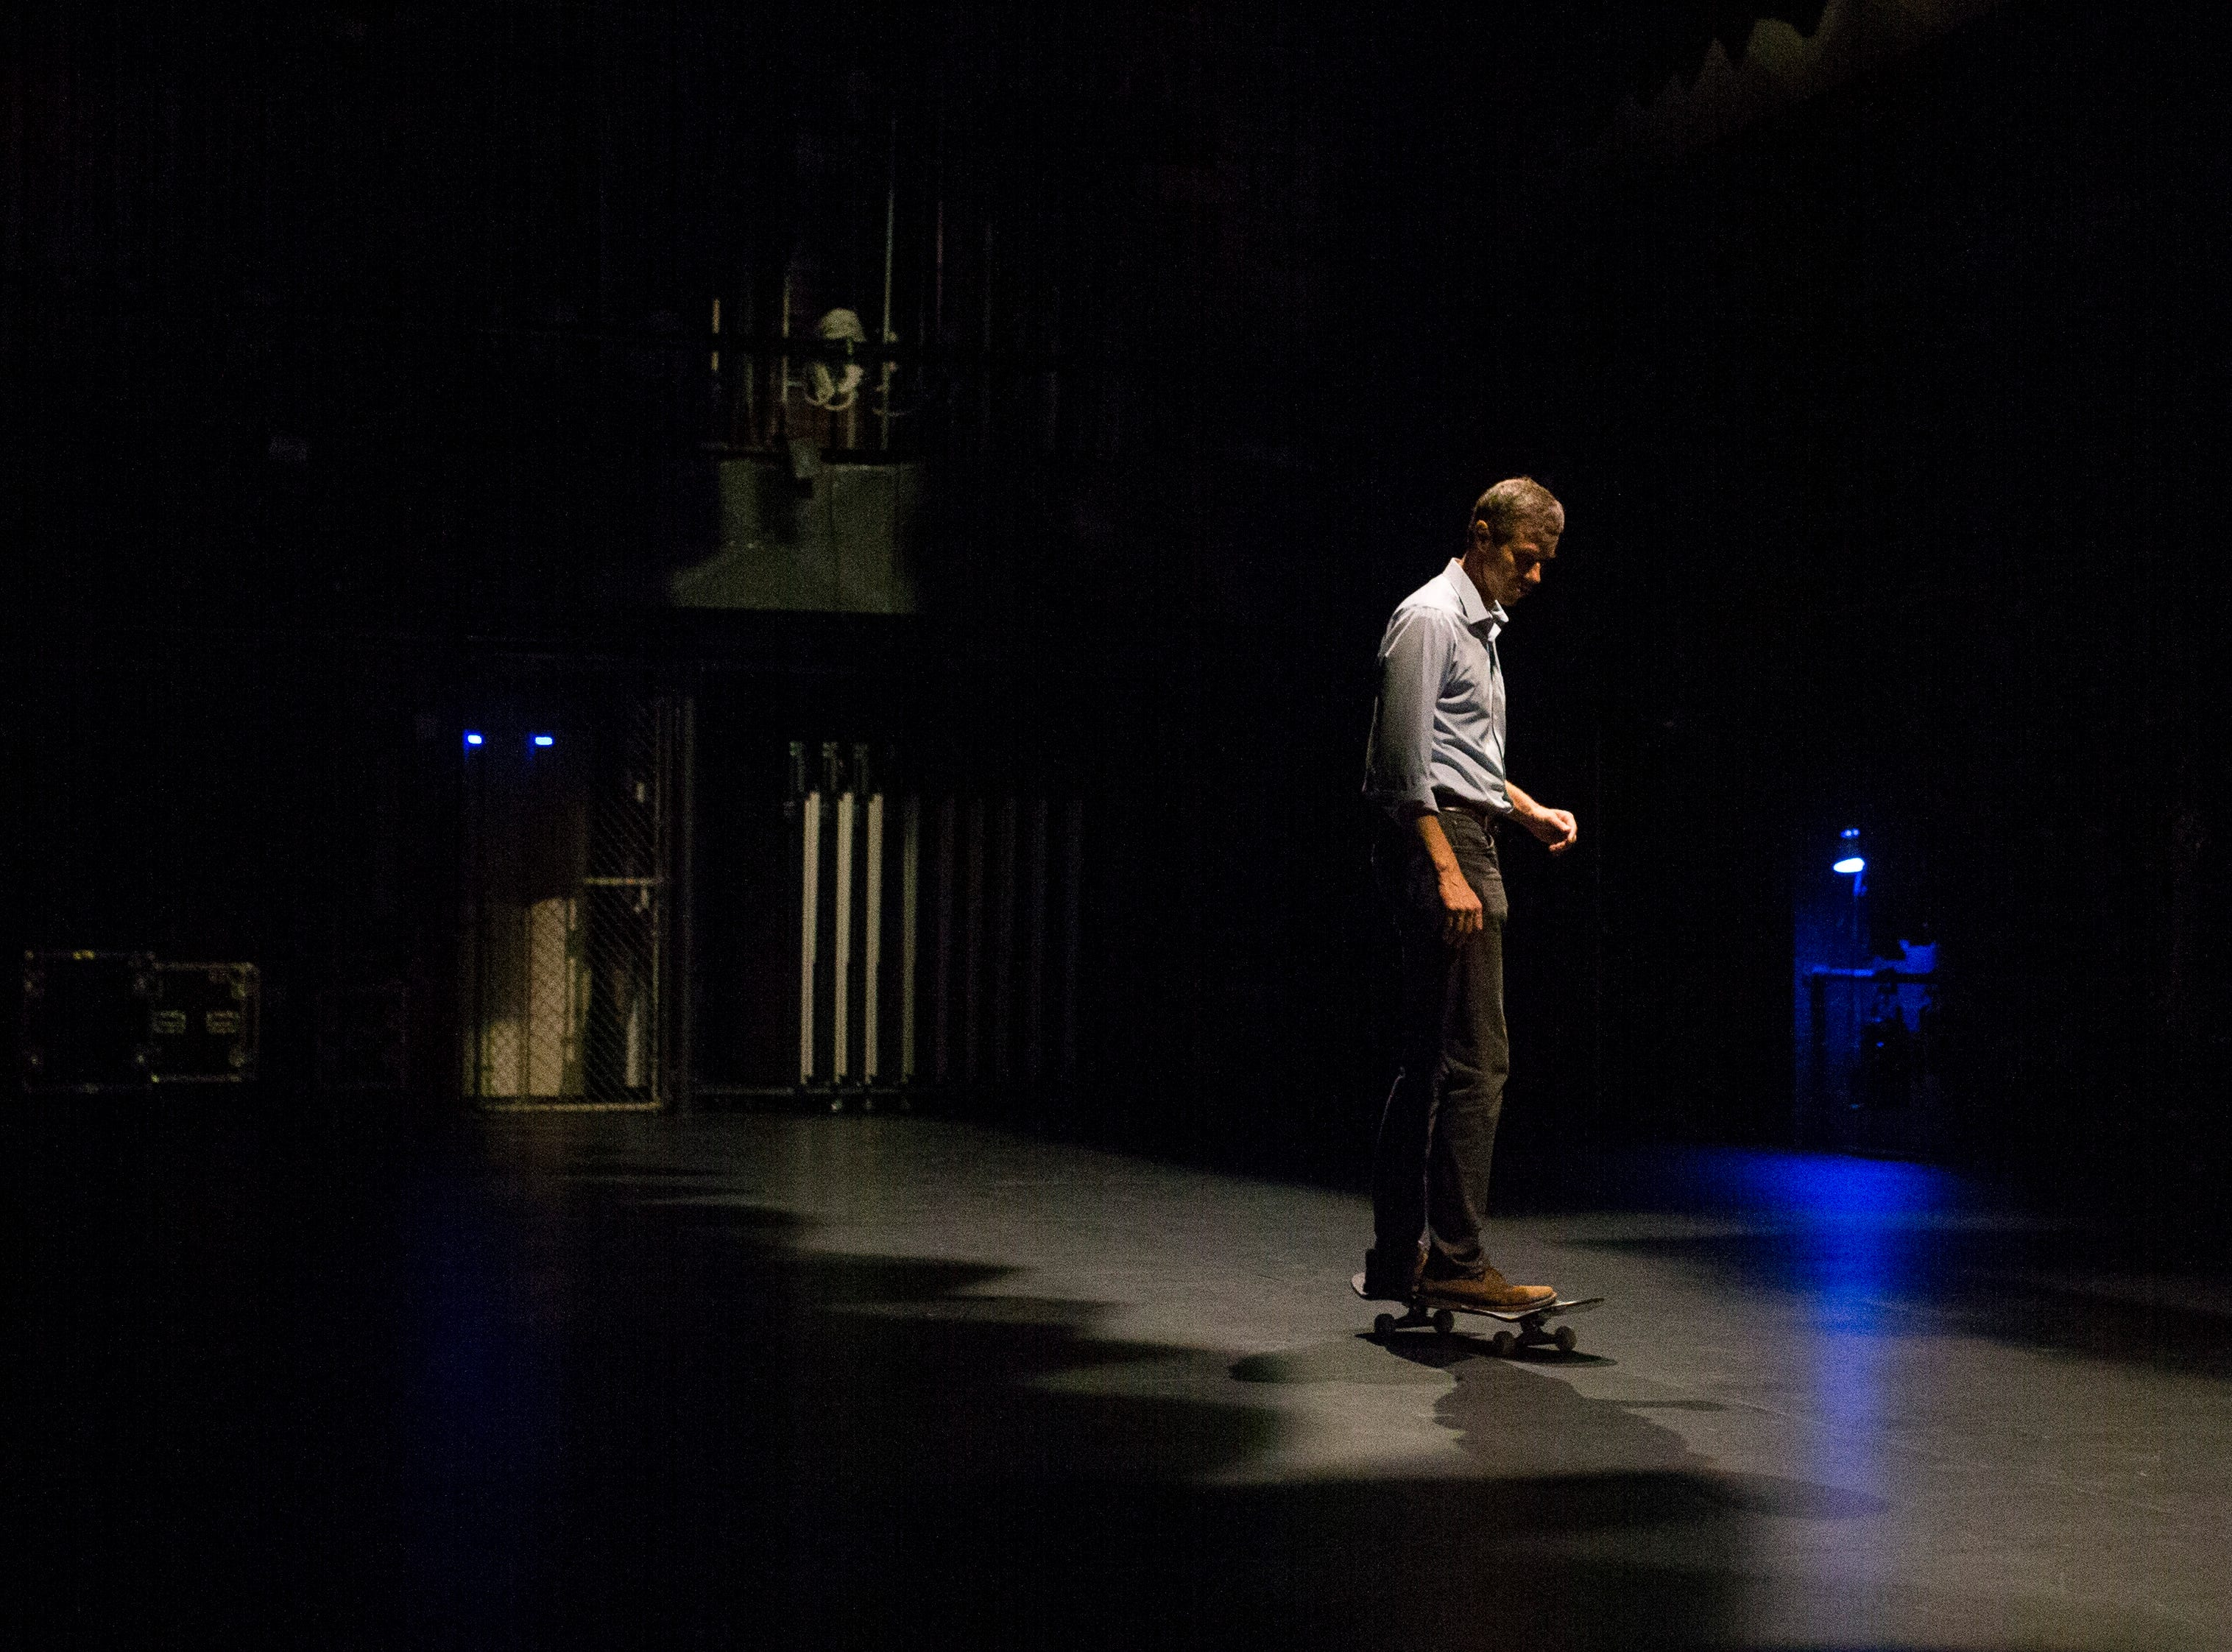 U.S. Rep. Beto O'Rourke skates on a skateboard behind stage before speaking at a campaign event on Saturday, Oct. 13, 2018 at Del Mar College in Corpus Christi.